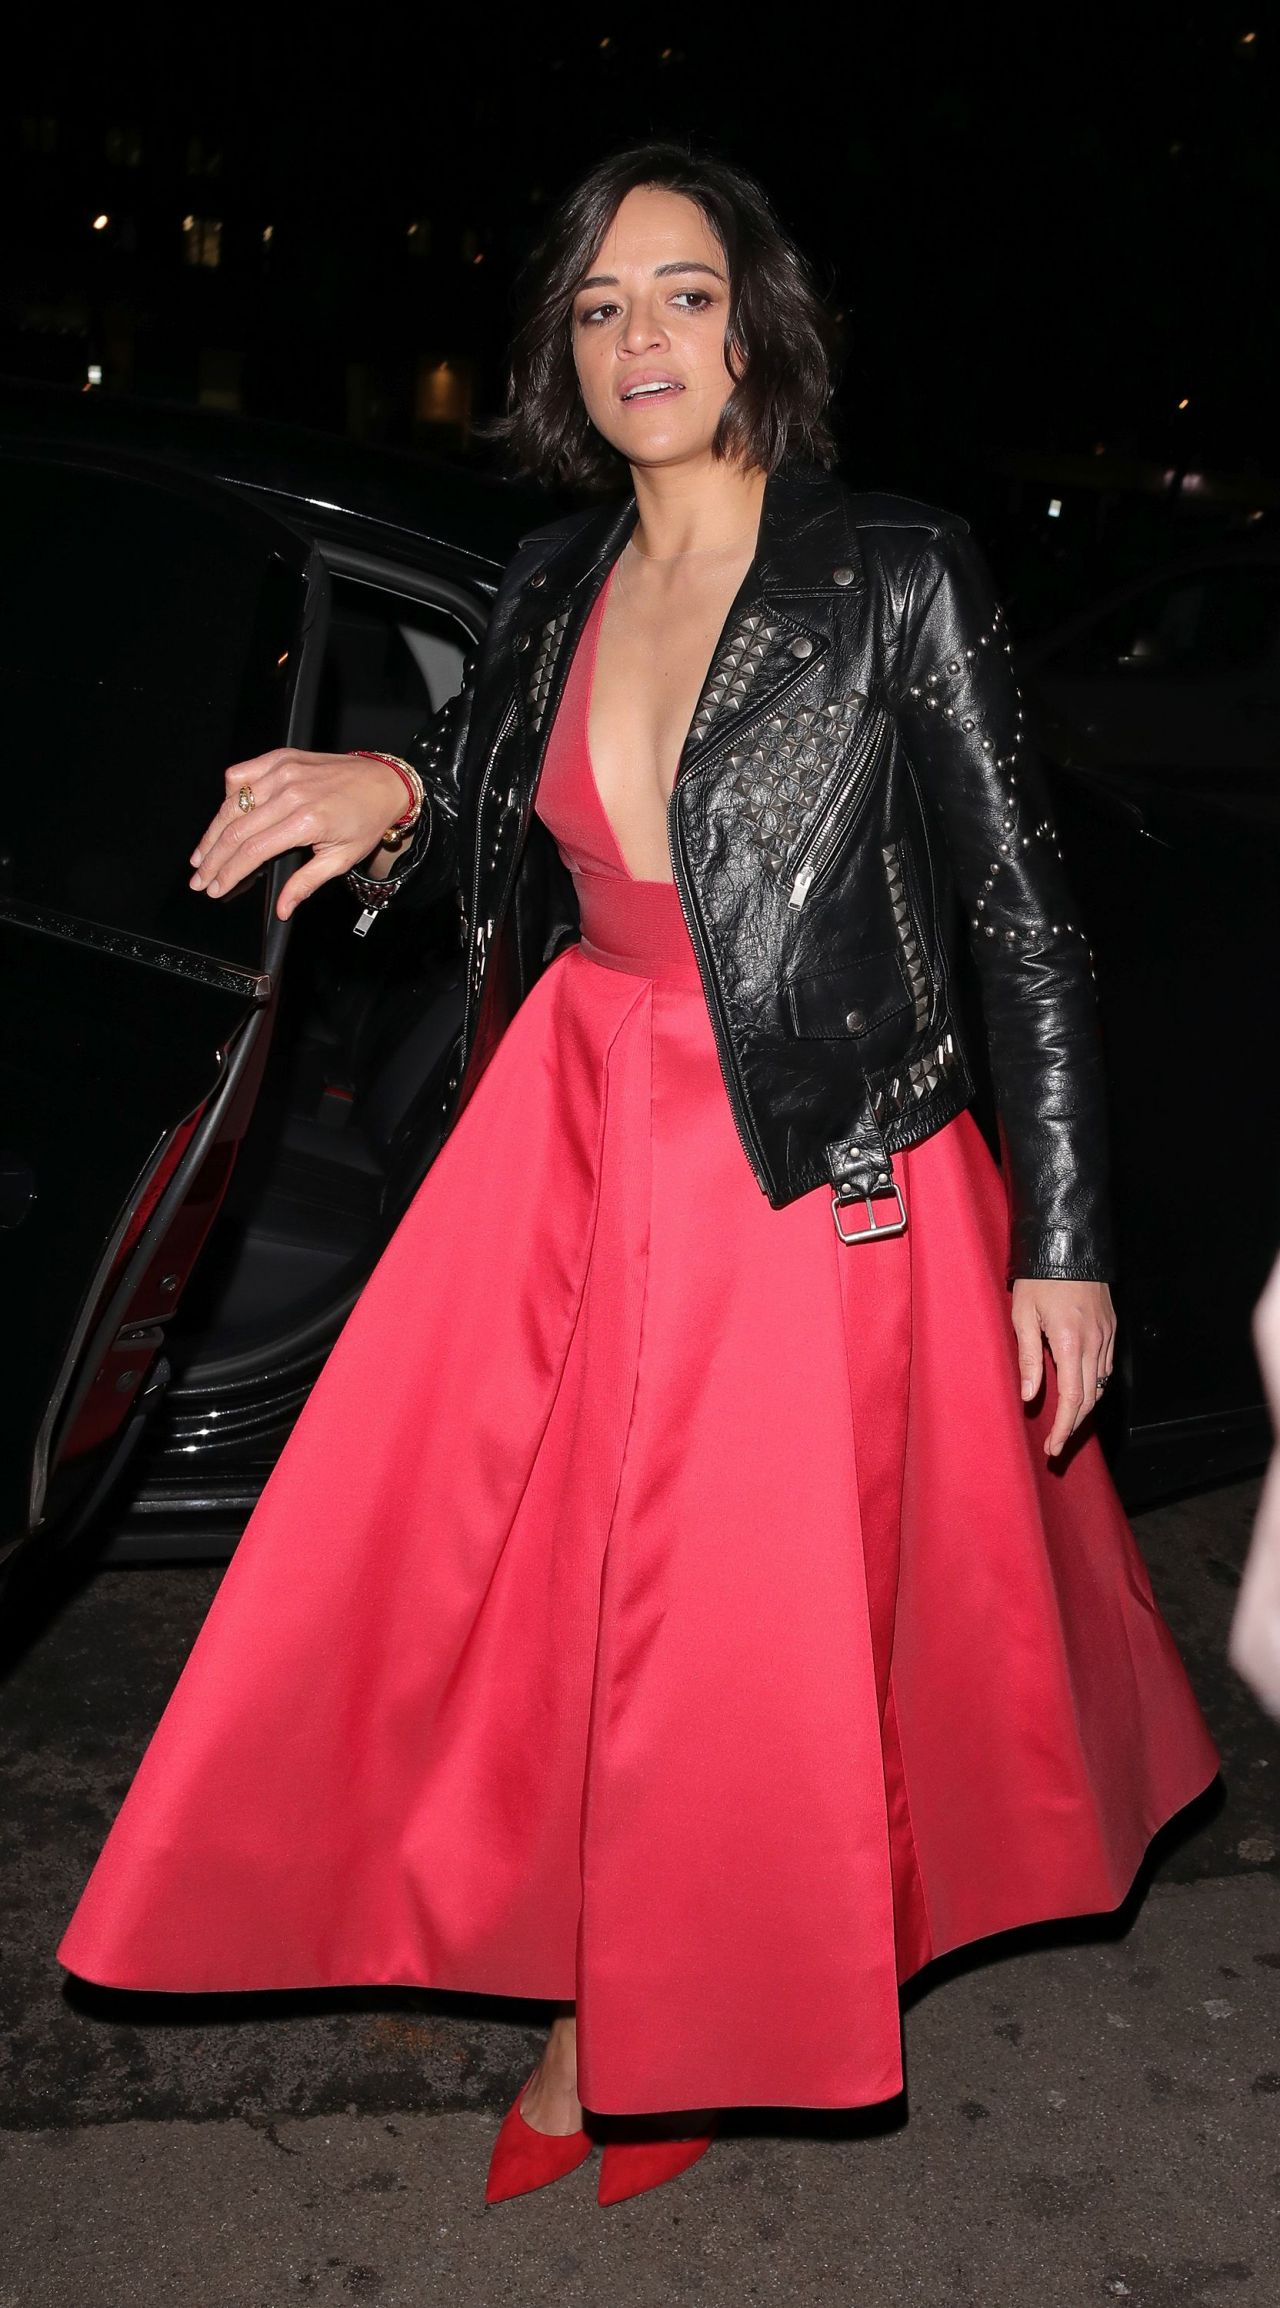 https://celebmafia.com/wp-content/uploads/2019/02/michelle-rodriguez-vogue-bafta-party-02-10-2019-5.jpg